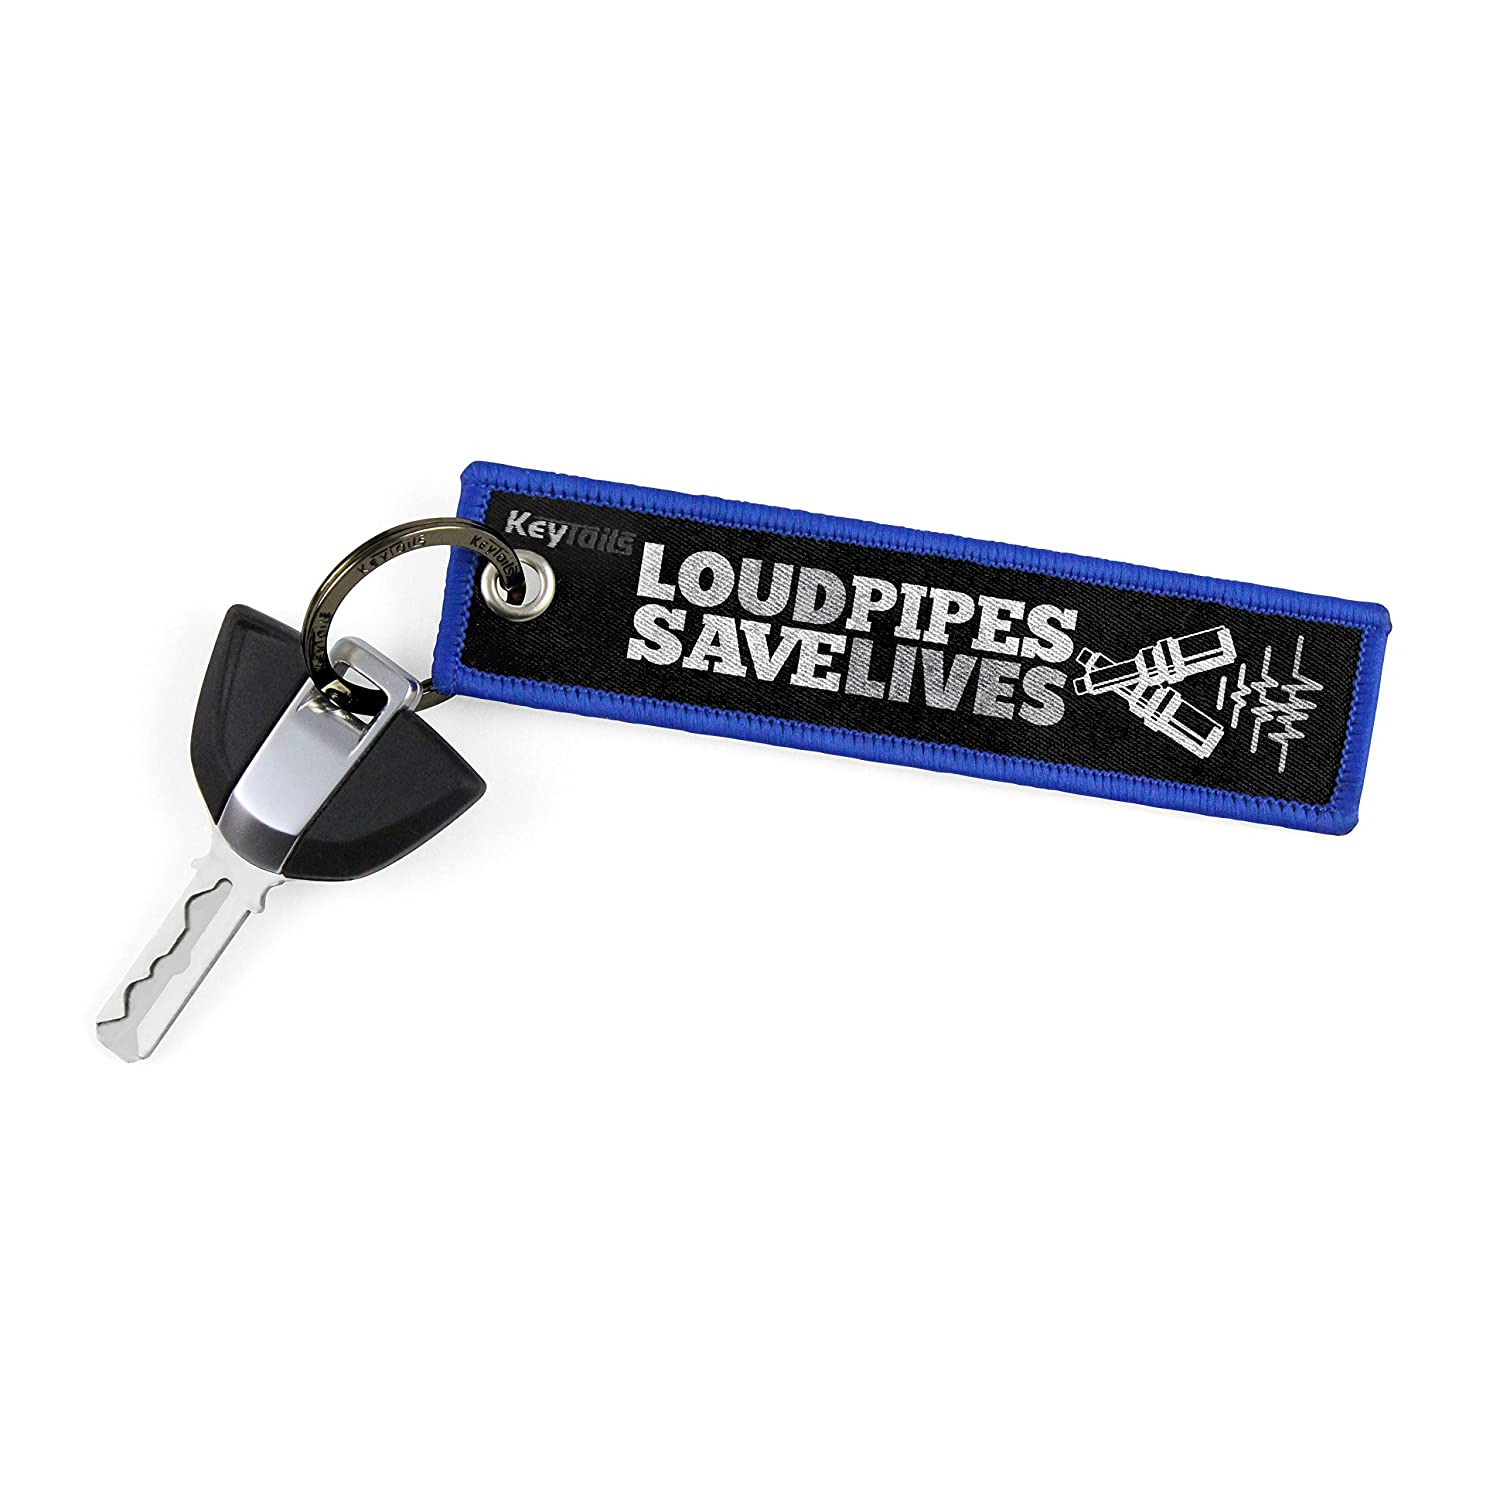 ATV UTV Scooter Premium Quality Key Tag for Motorcycle KEYTAILS Keychains Loud Pipes, Save Lives